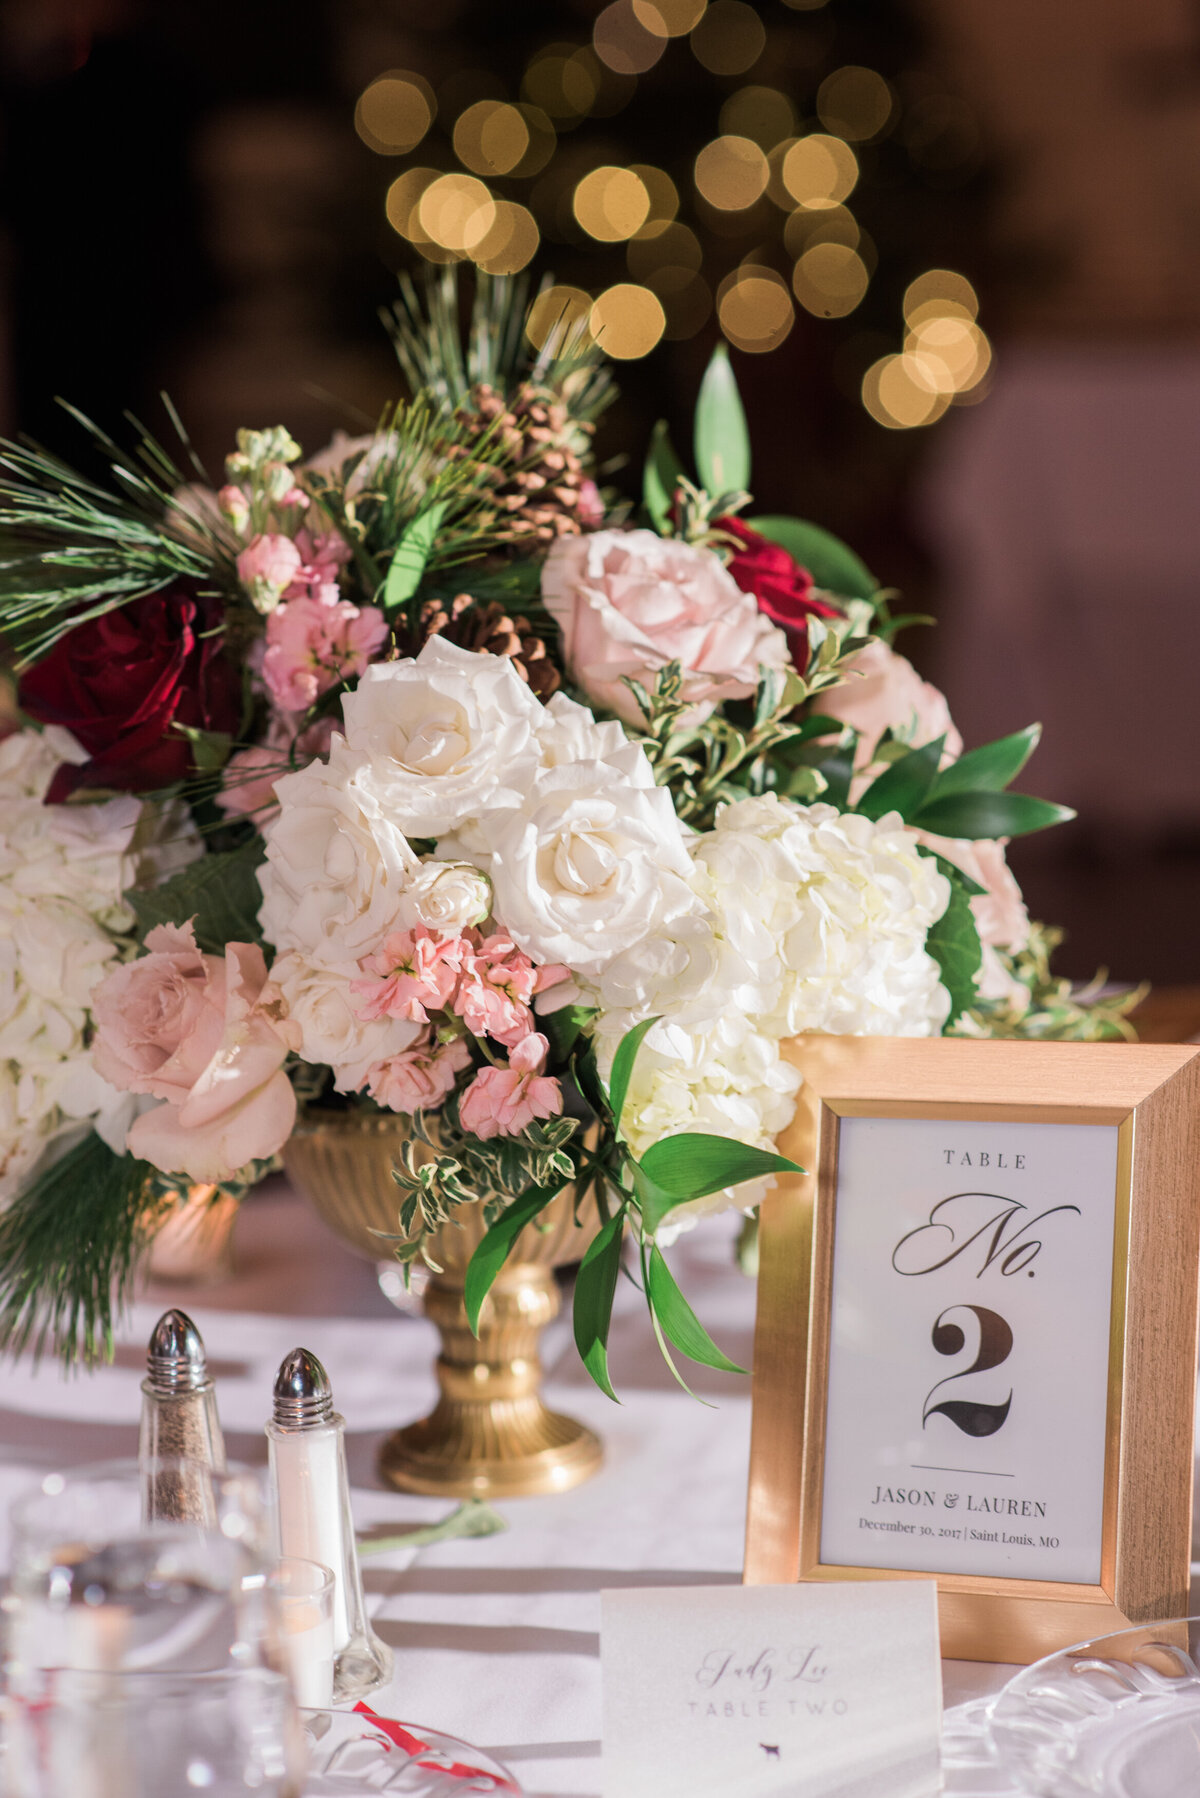 Franklin room tablescape wedding reception